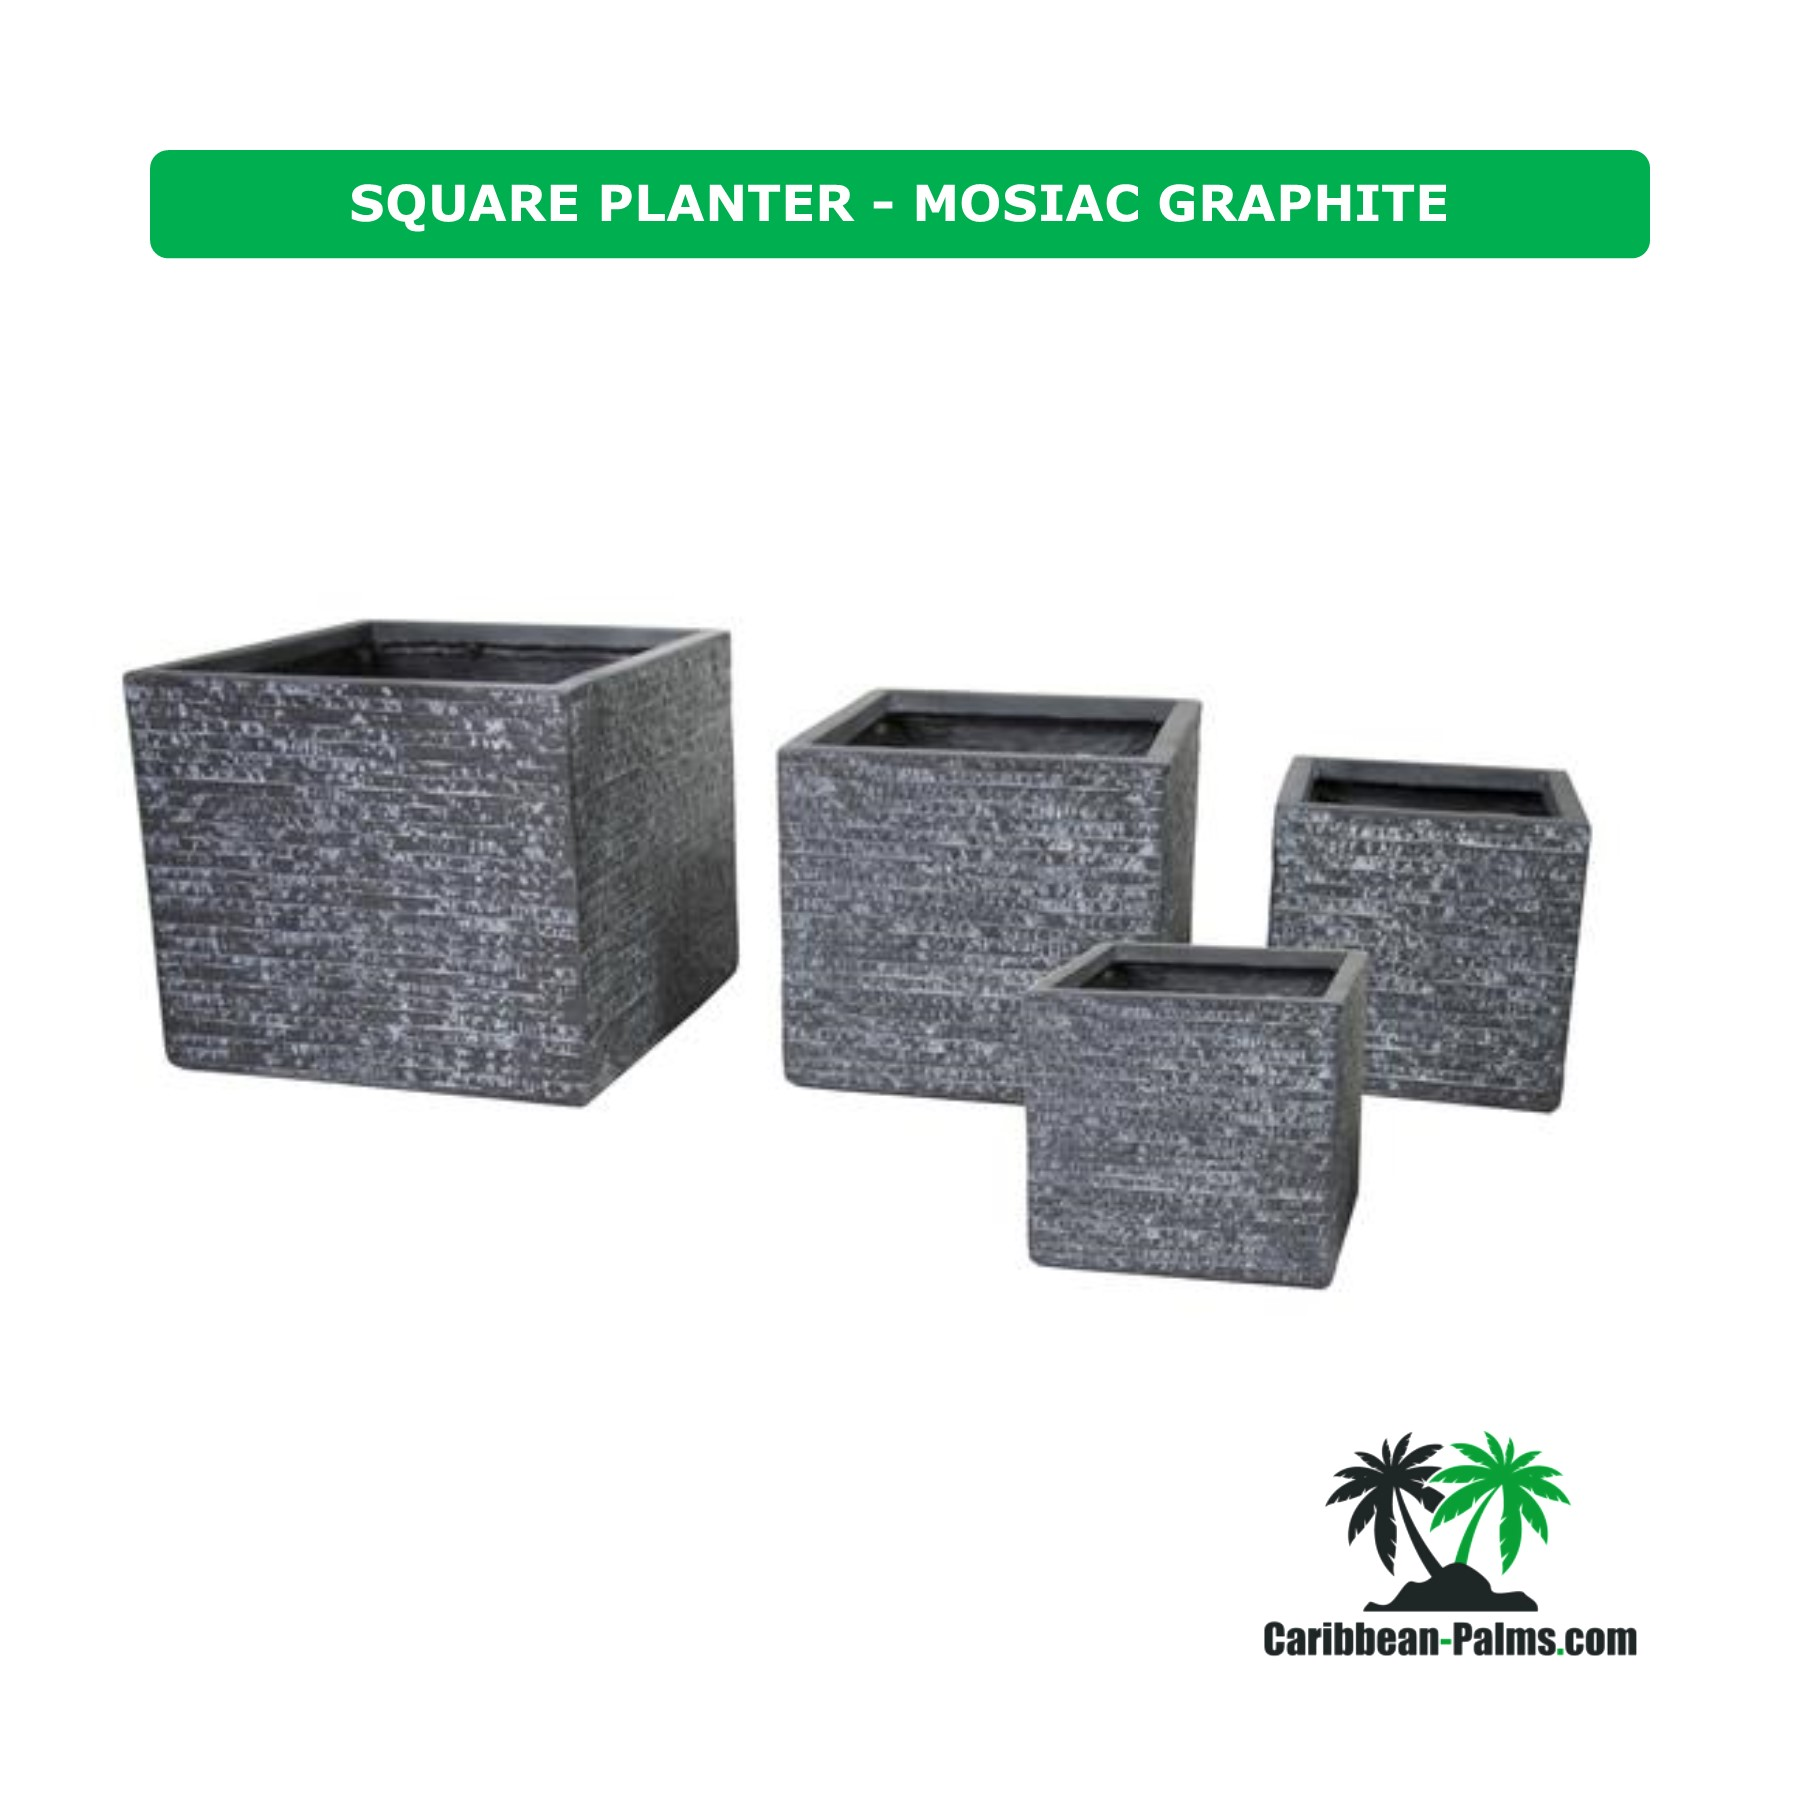 SQUARE PLANTER MOSIAC GRAPHITE